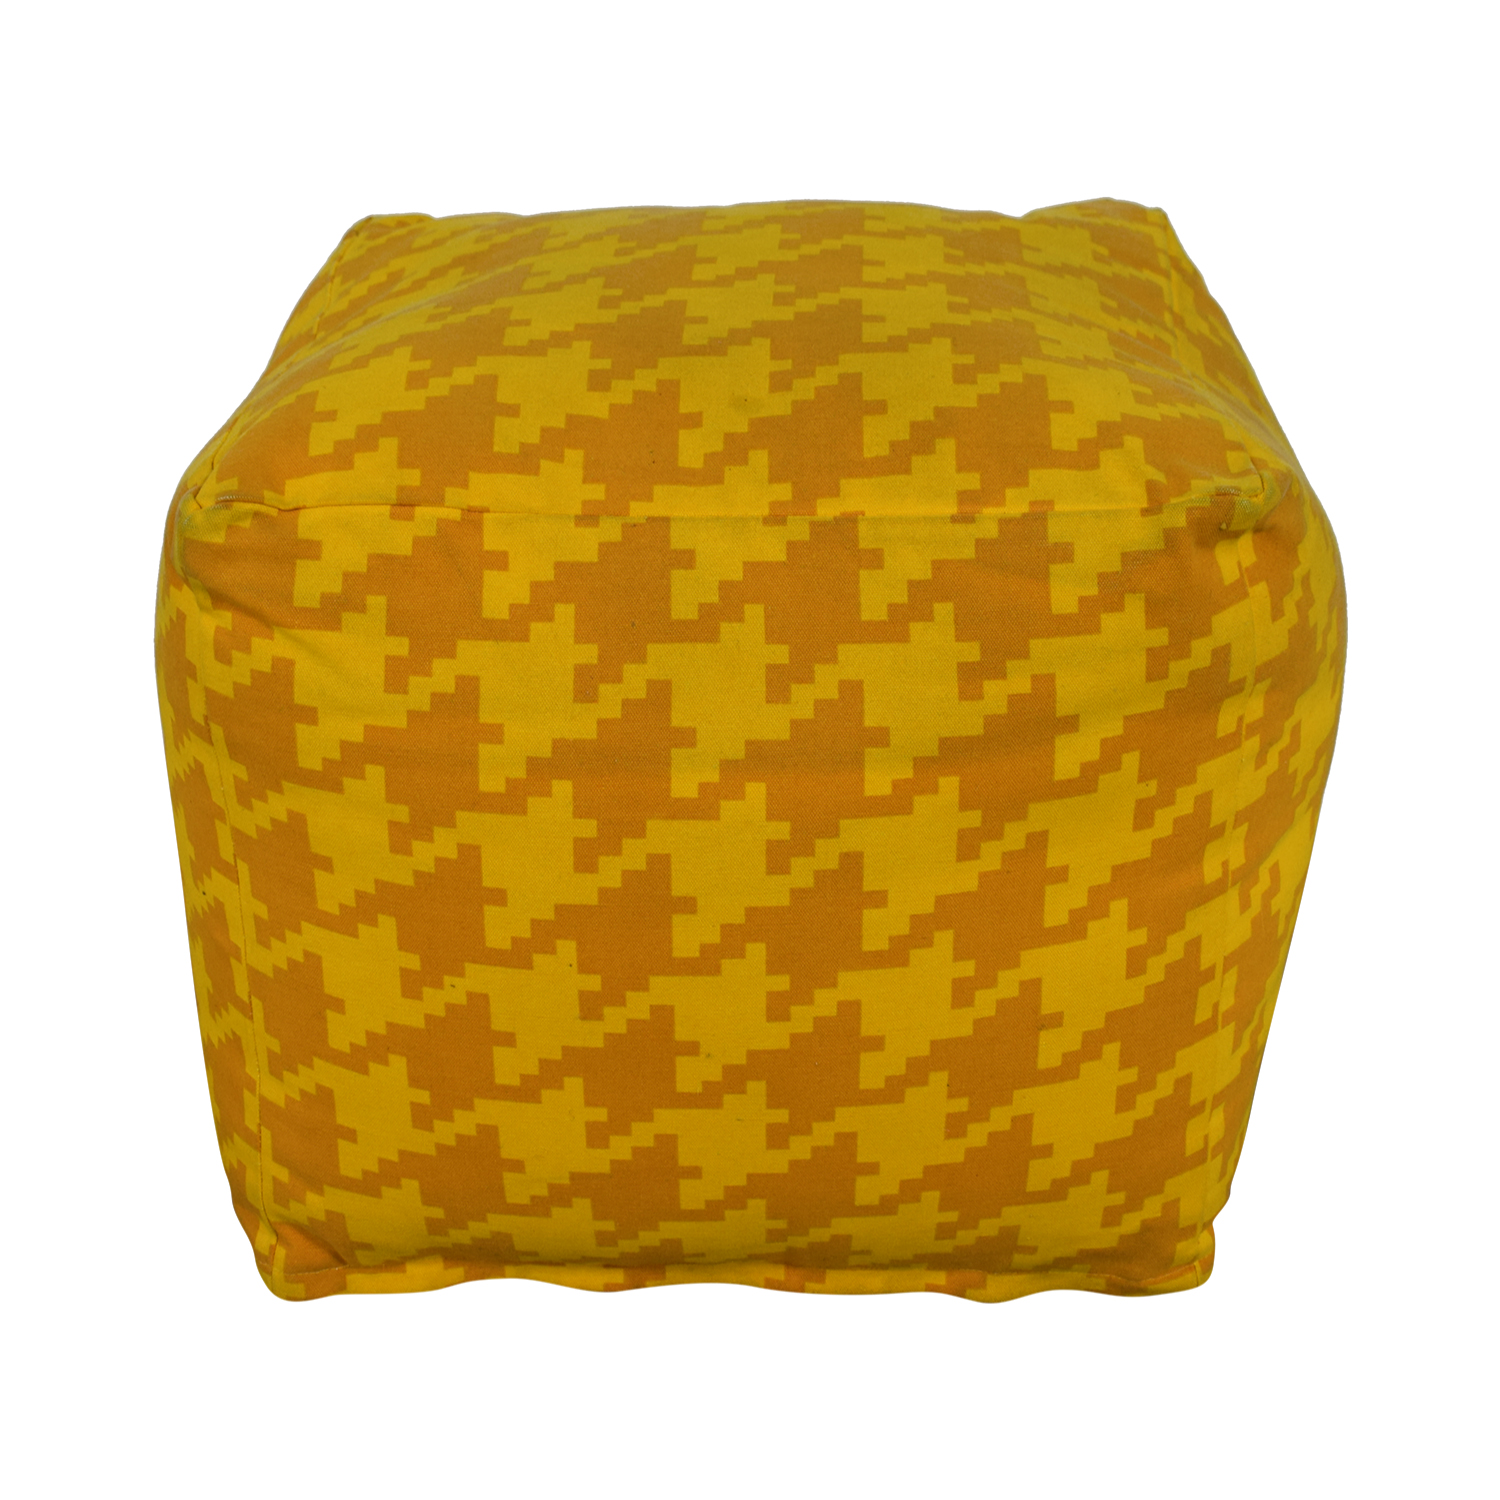 Surya Surya Playhouse Sunflower Houndstooth Pouf for sale